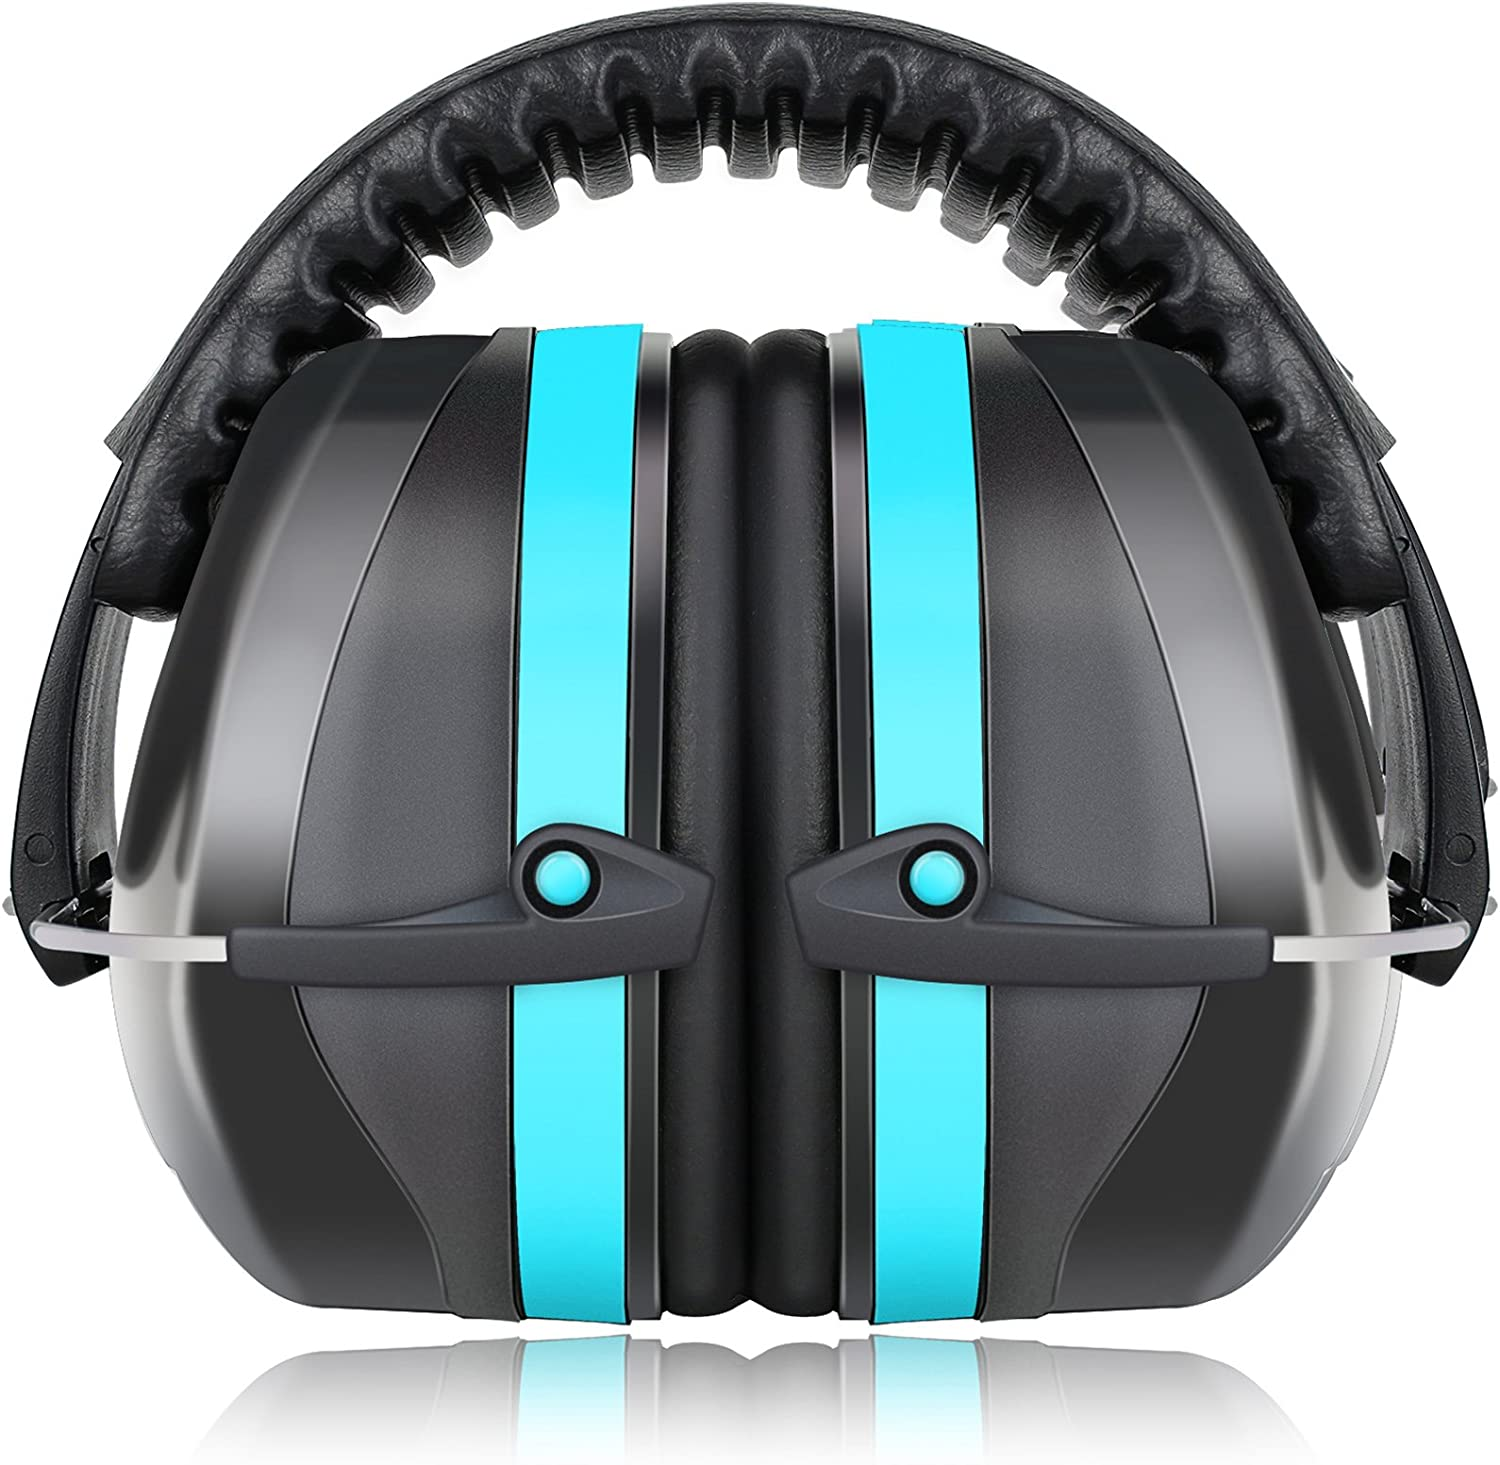 Fnova 34dB Highest NRR Safety Ear Muffs - Professional Ear Defenders for Shooting, Adjustable Headband Ear Protection/Shooting Hearing Protector Earmuffs Fits Adults to Kids - -